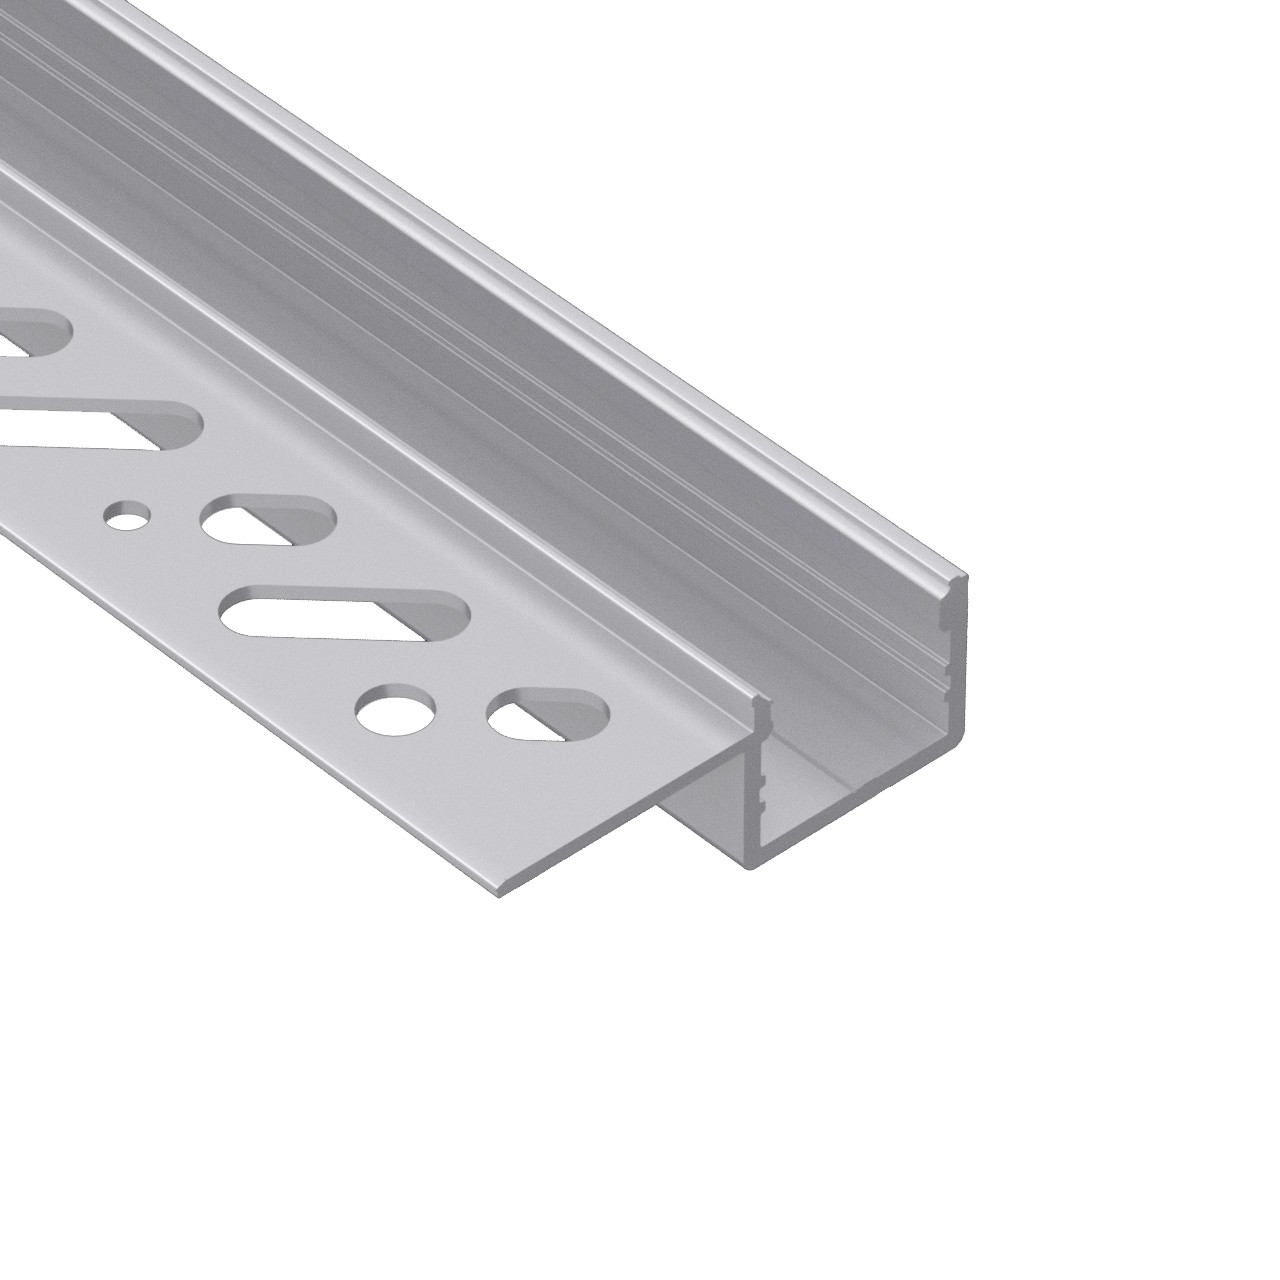 CT5S trimless extrusiones de aluminio para empotrar en cartón-yeso borde 38.8x13.6mm